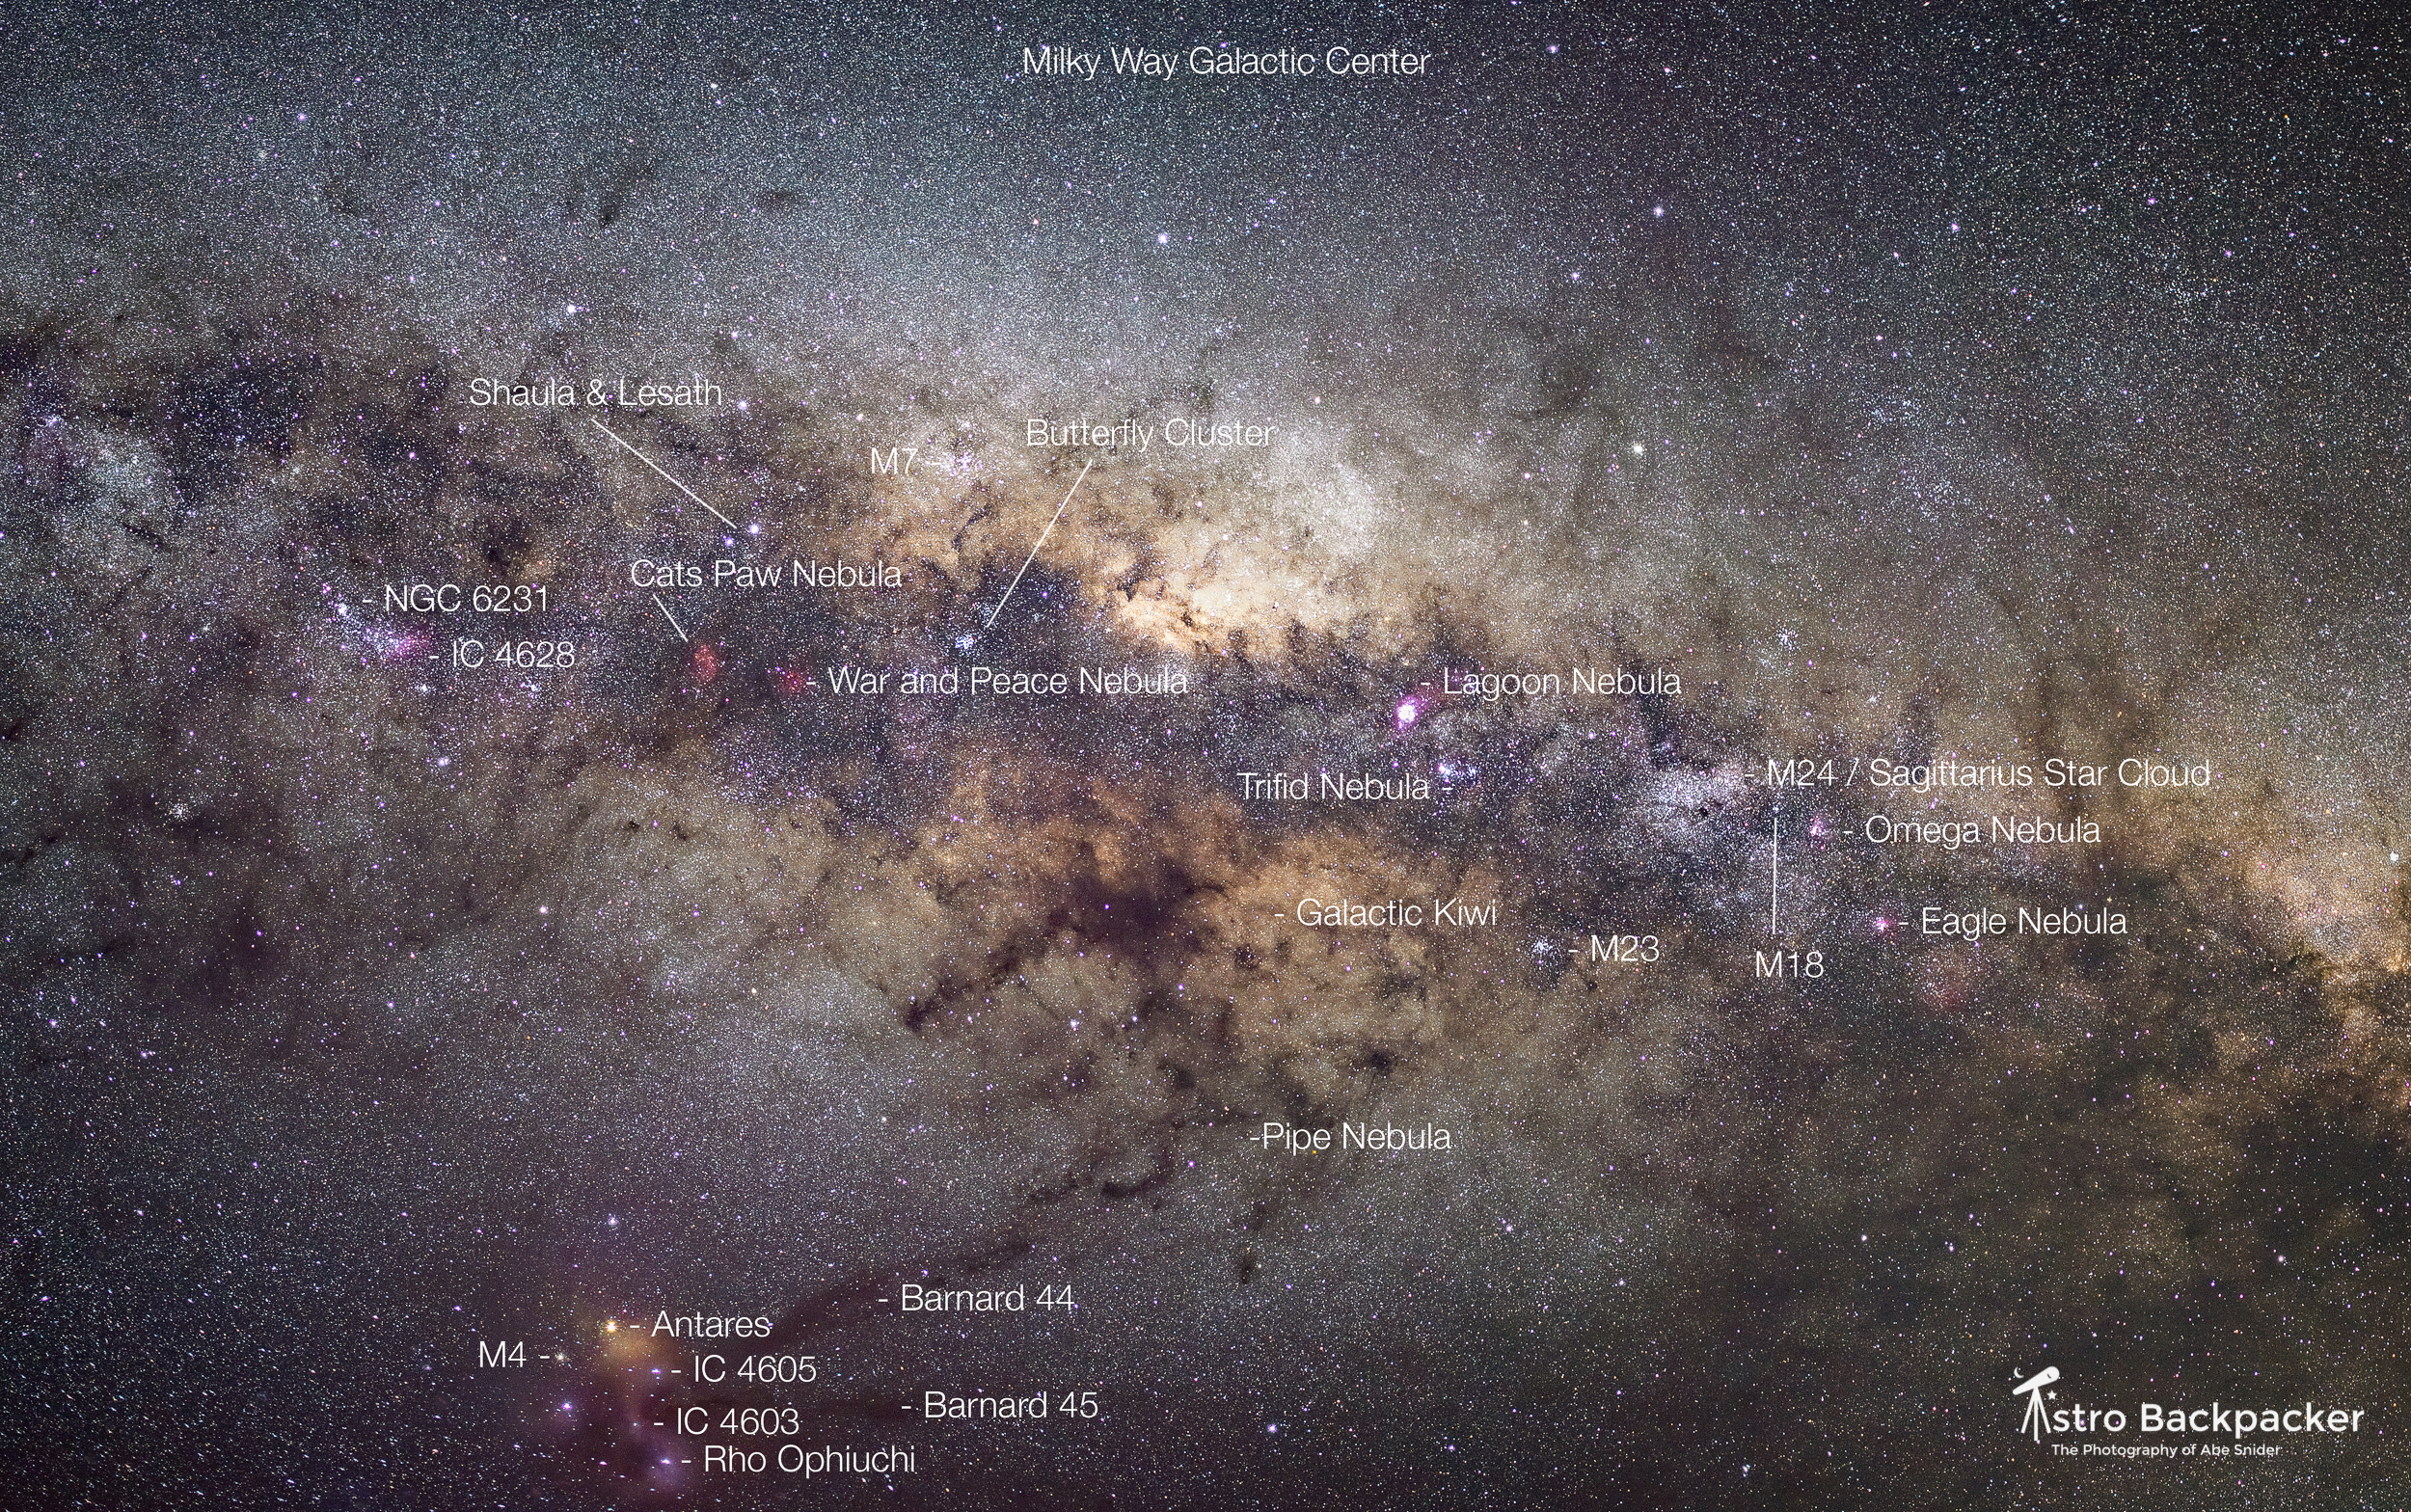 Galactic Core - Labeled